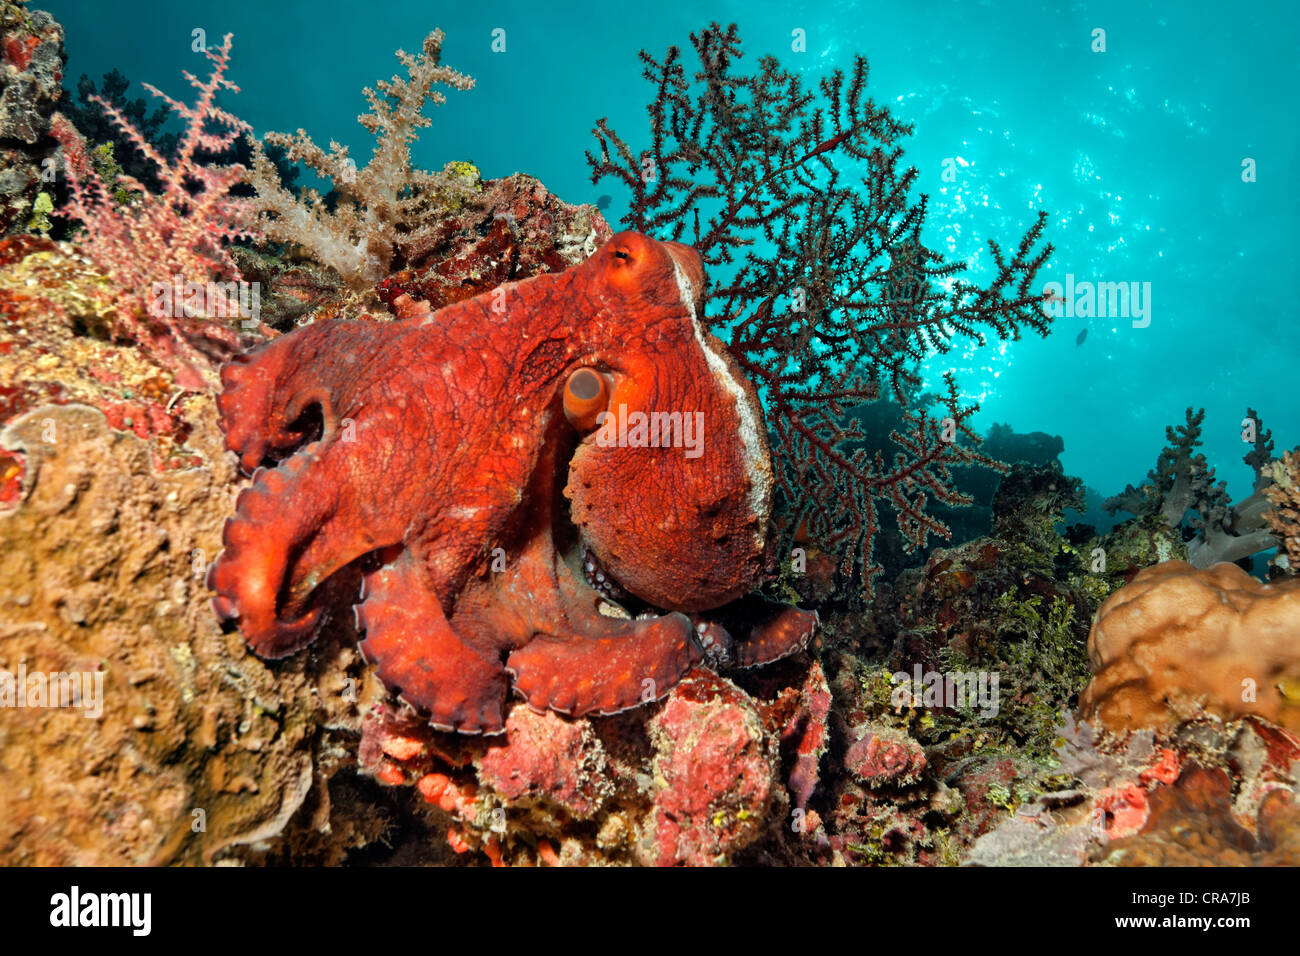 Octopus (Octopus vulgaris), red, sitting on coral reef ...